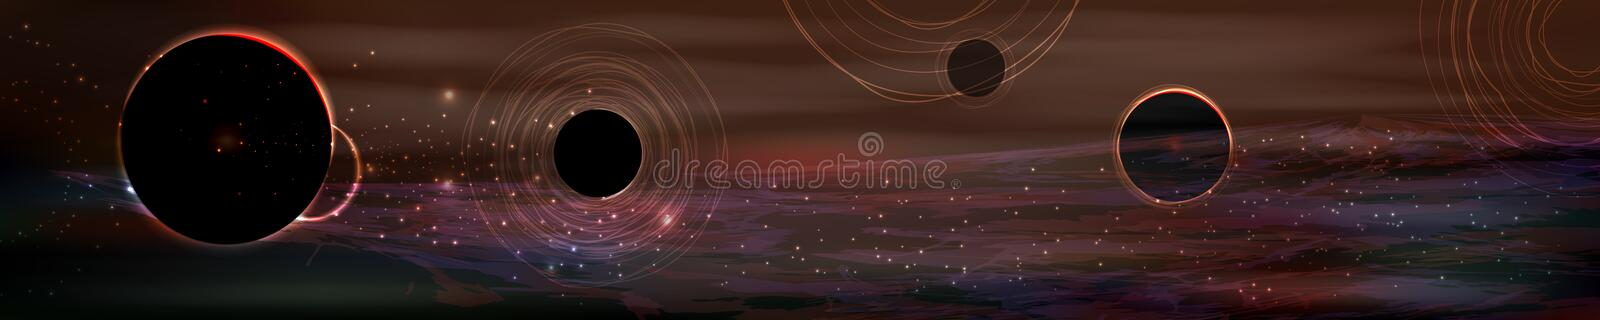 Cosmos panorama. long horizontal. Image of a large size. dark planets. black silhouettes vector illustration